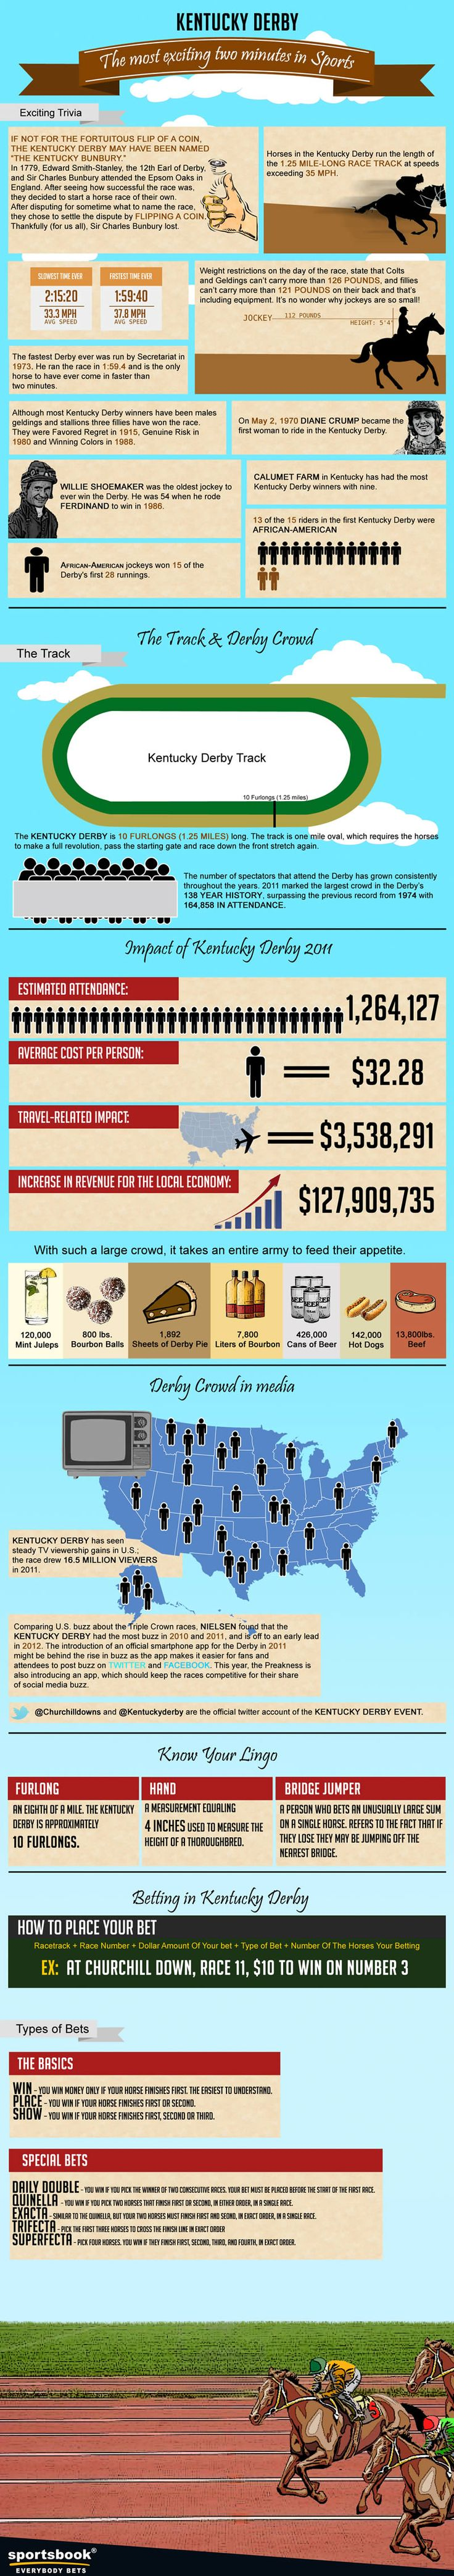 Enjoy this great Kentucky derby infographics brought to you by Sportsbook.ag Bet Kentucky Derby at Sportsbook.ag today! We've got huge cash prizes and bonuses for all bettors. Plus find the most up-to-date Kentucky Derby betting odds, information and tips from experts.Kentucky derby betting had never been this great! Bet now at Sportsbook.ag  Source: http://www.sportsbook.ag/horse-betting/kentucky-derby-odds/